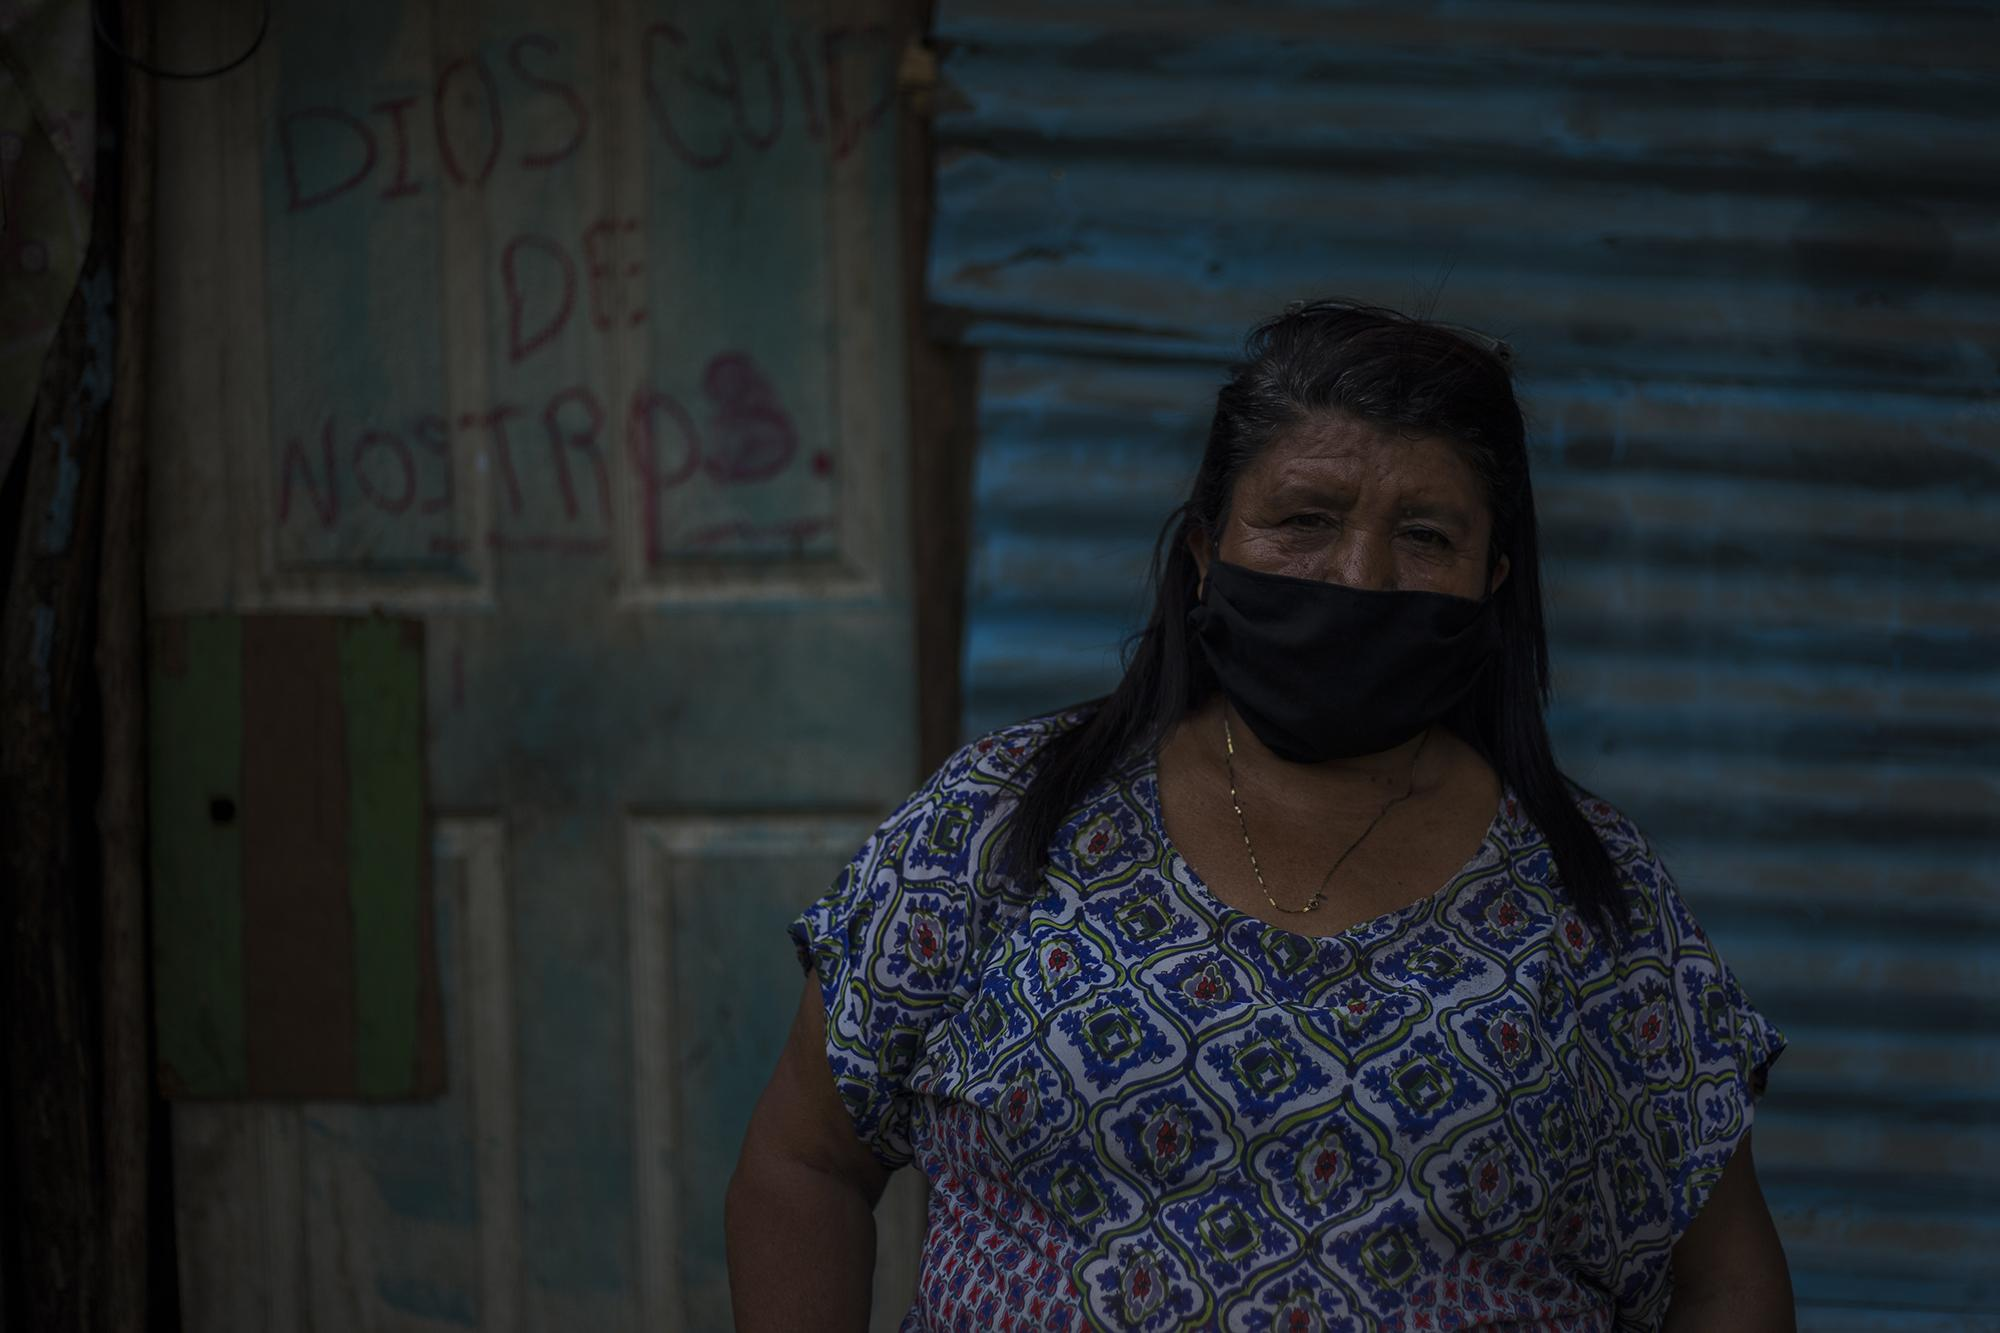 Daysi Quintanilla, a domestic worker, lives in the Chandanta community, in Cuscatancingo. After nearly half a century working as a domestic worker, she's been sent home without pay by her bosses. Photo by Victor Peña